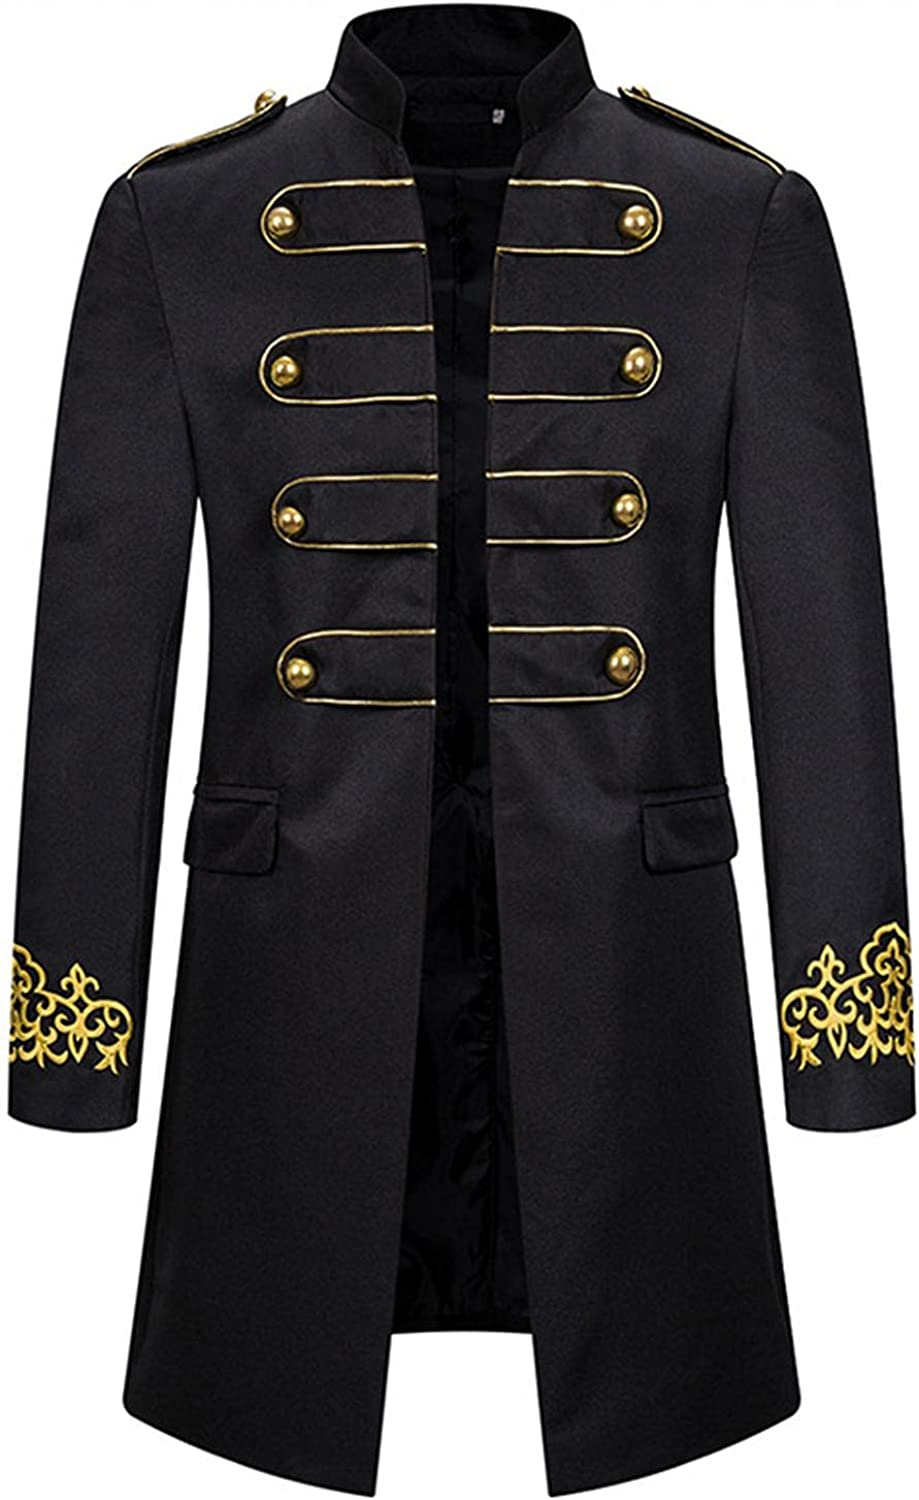 Mens Tuxedo Jacket Casual Patchwork Slim Fit Coats Open Front Fashion Blouse Outwear for Wedding Halloween Christmas